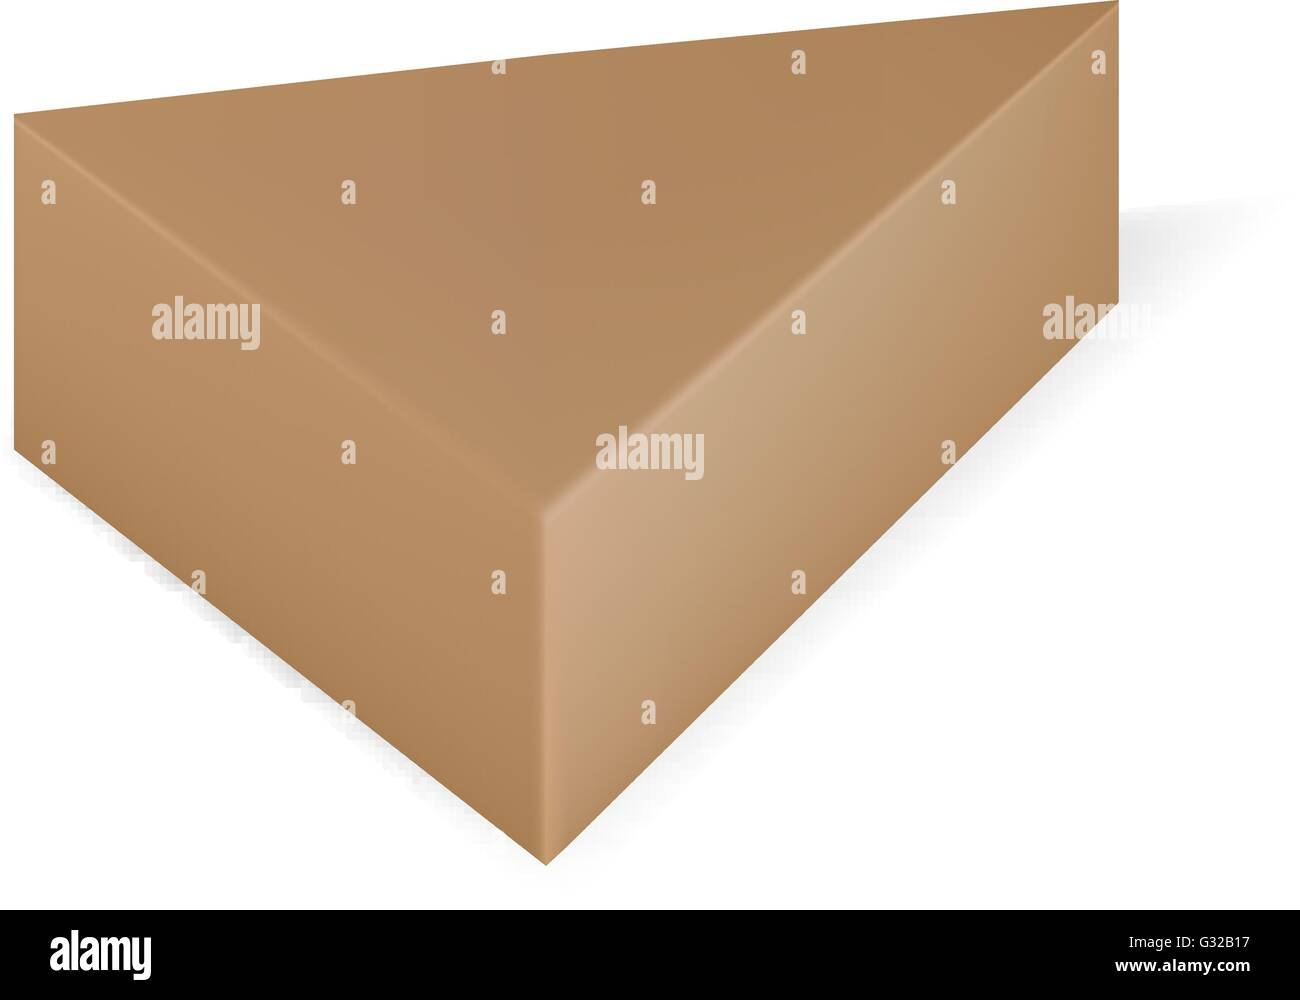 VECTOR PACKAGING Brown Triangle Packaging Box On Isolated White Background Mock Up Template